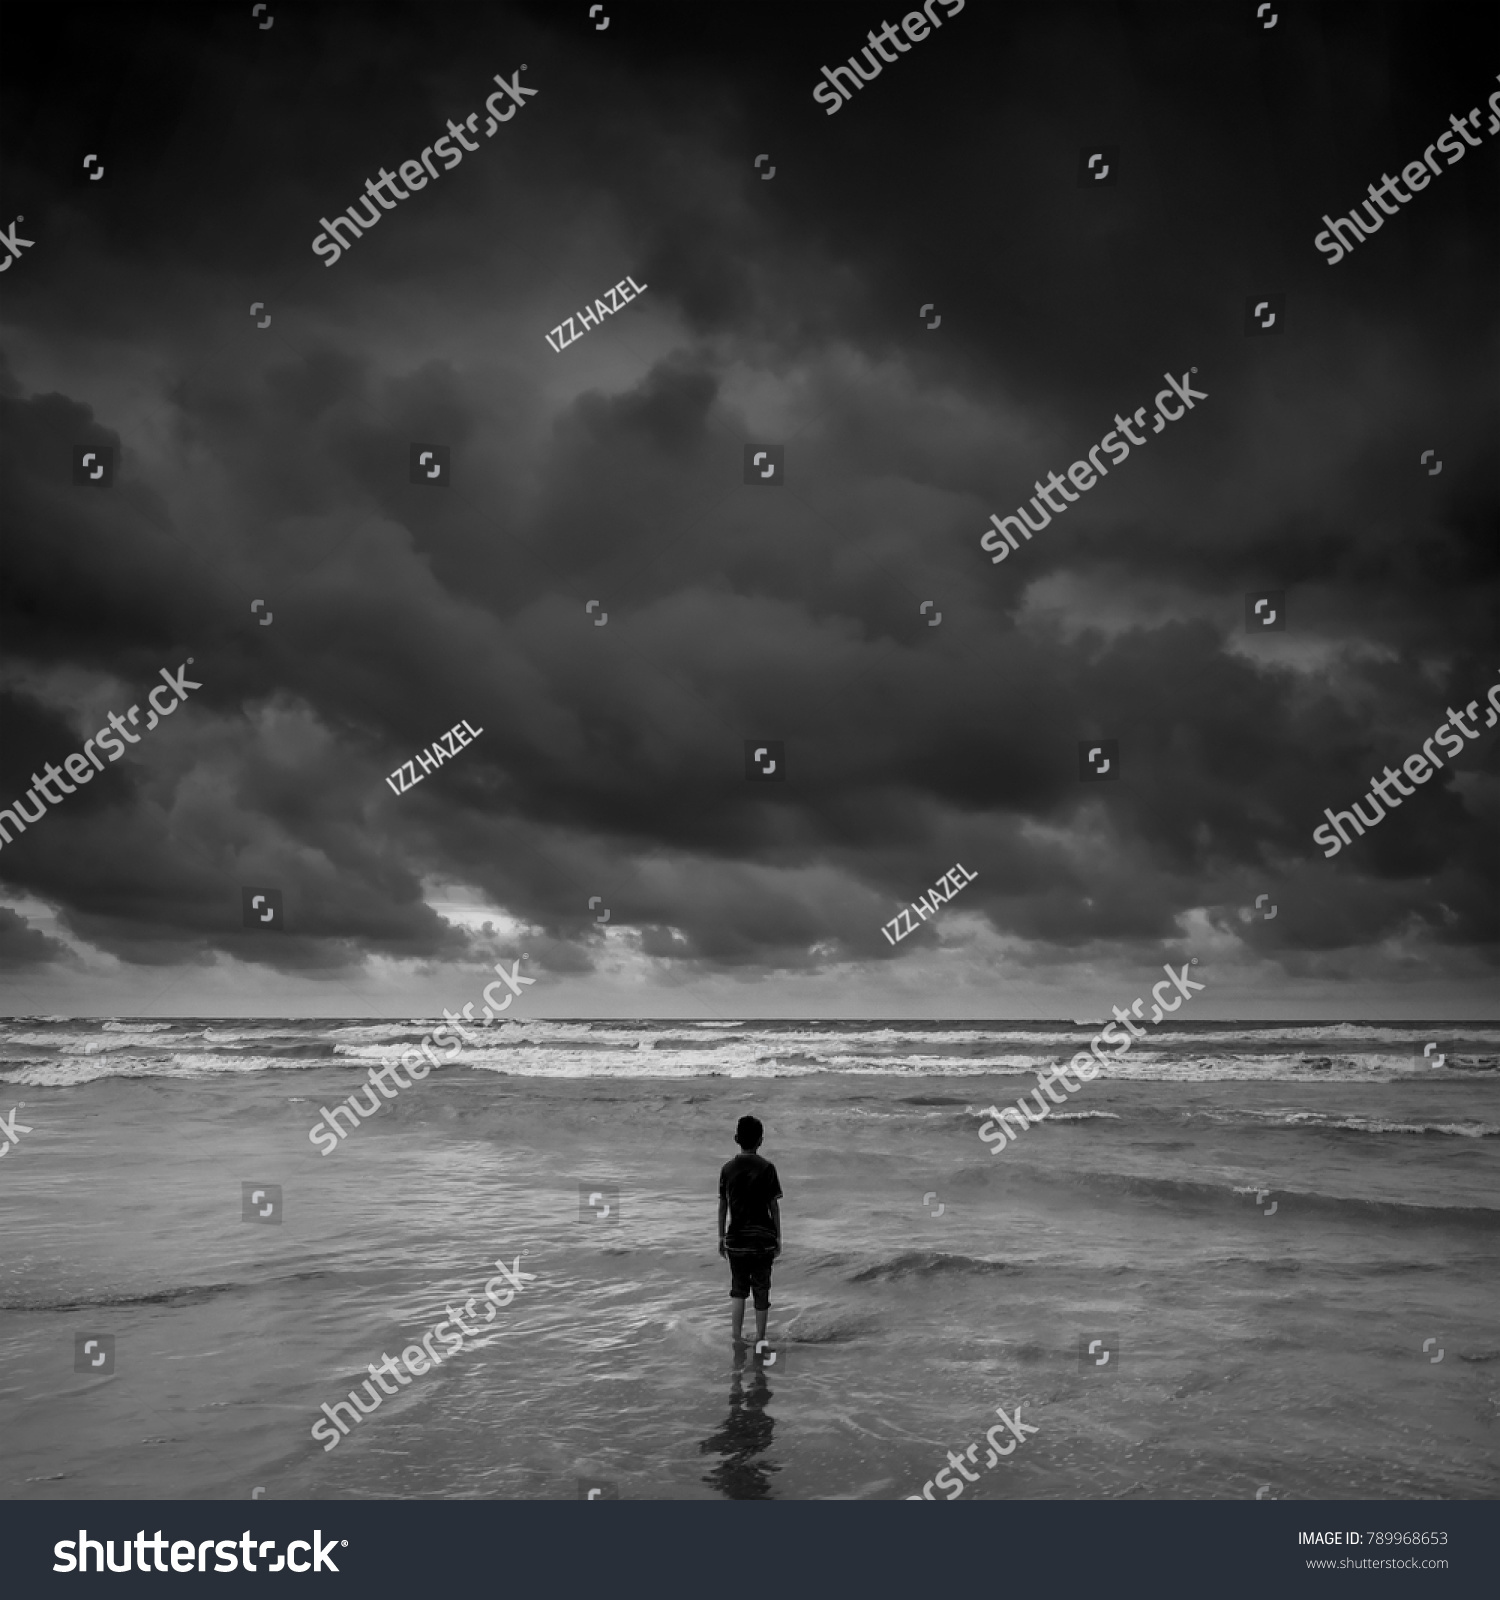 Lonely boy alone looking at the horizon near the beach during storm black and white photography